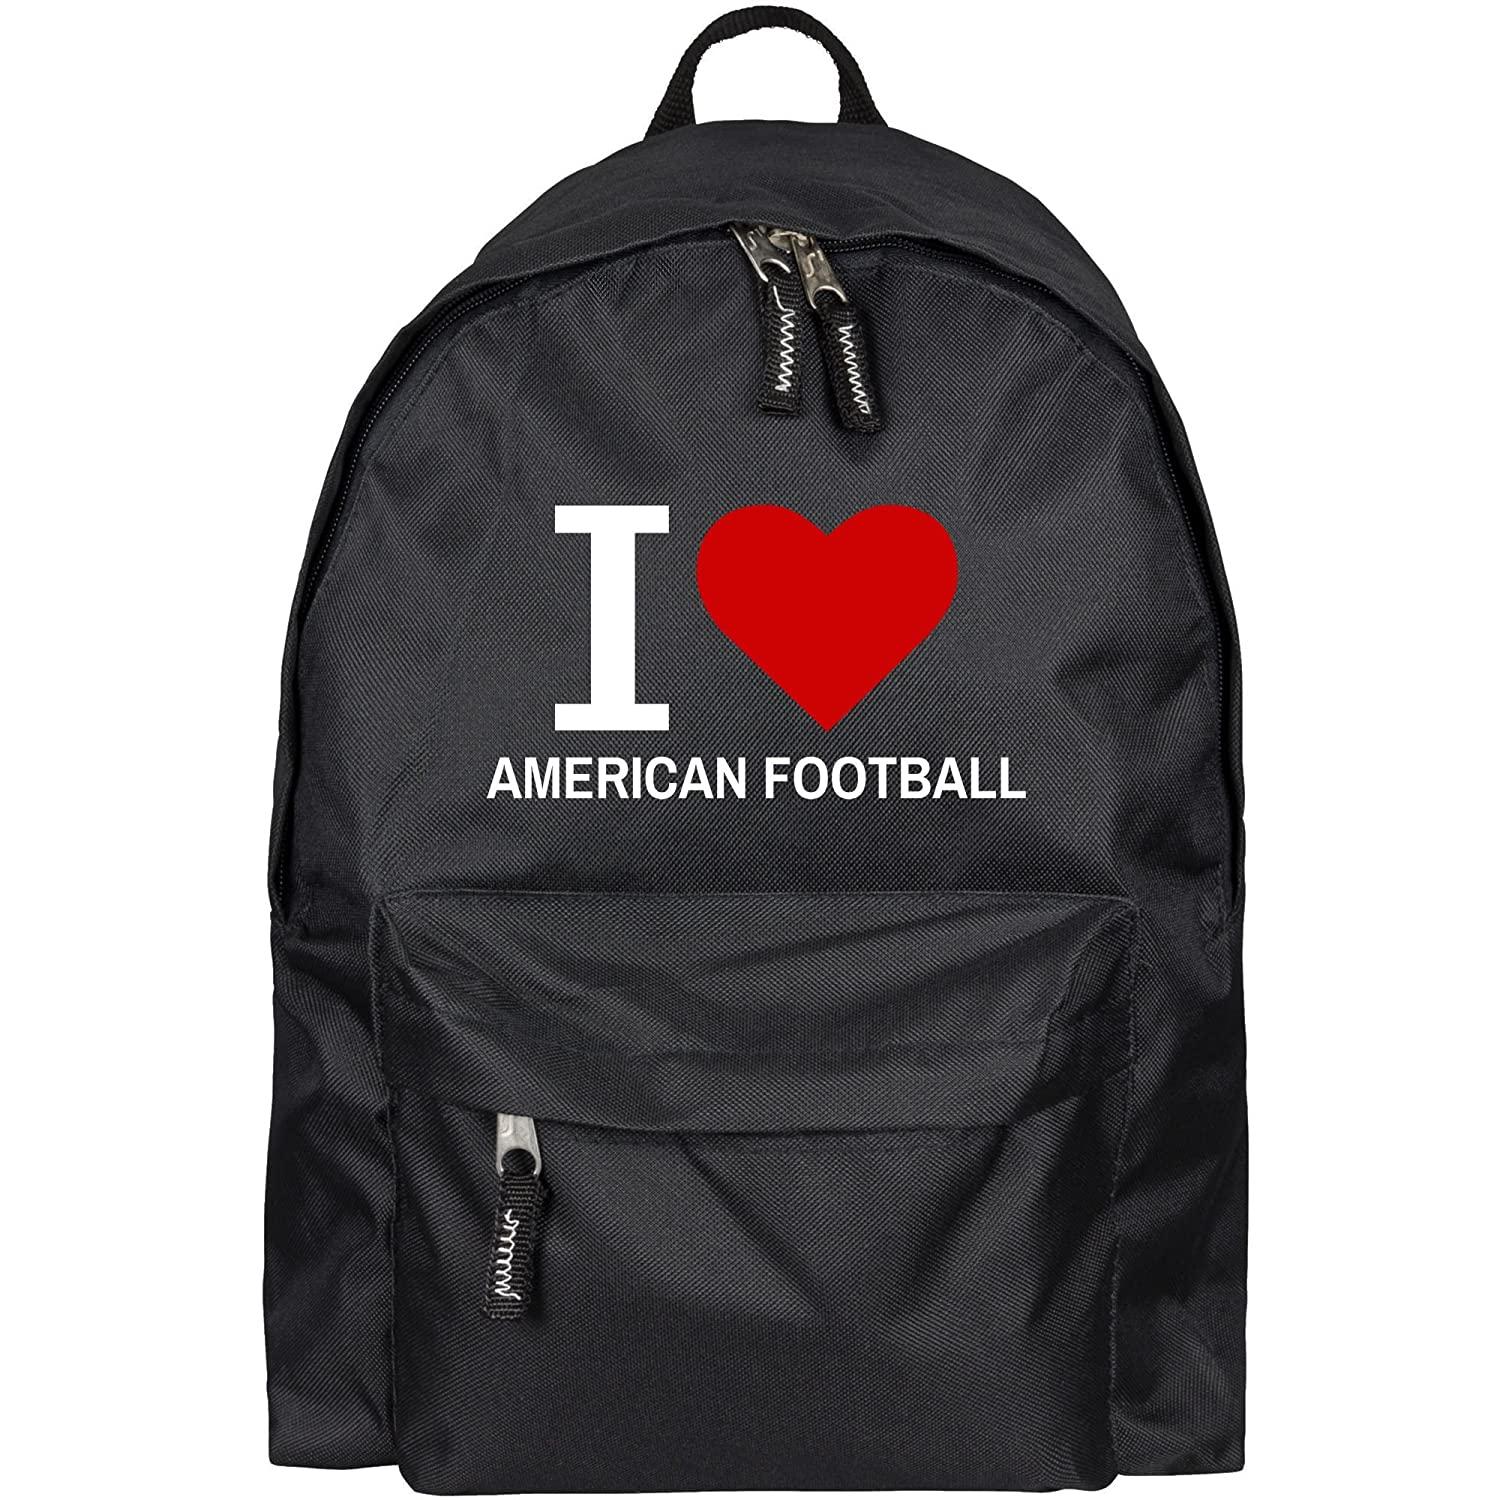 Sac /à dos classic i love football am/éricain noir